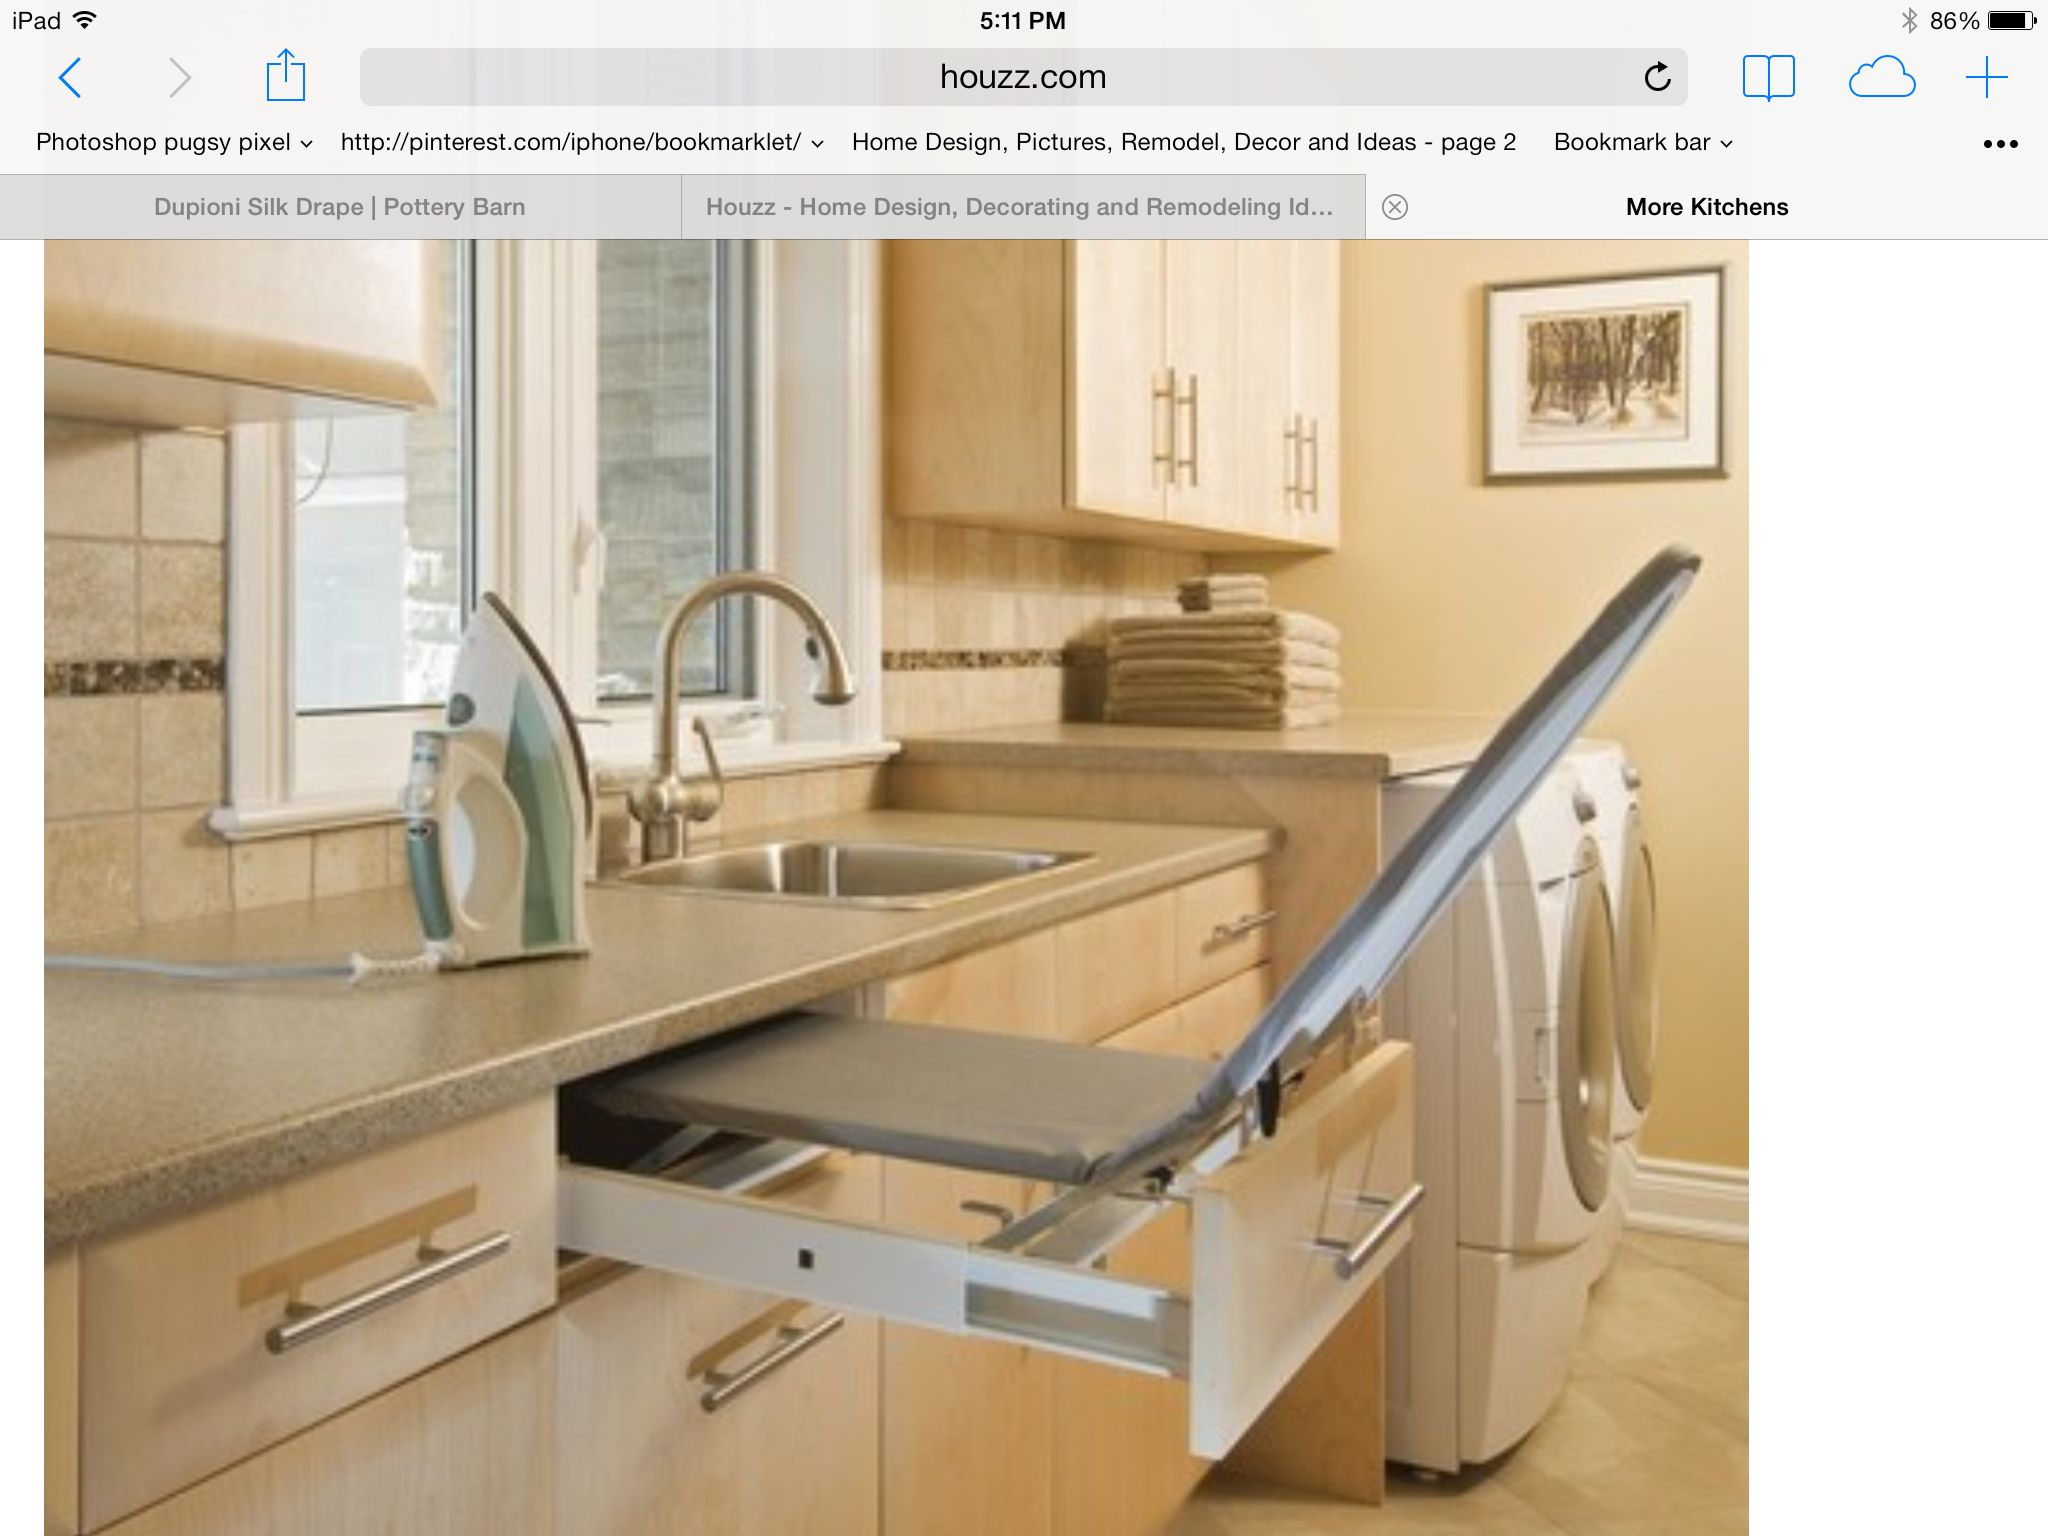 Built in ironing board..houzz.com